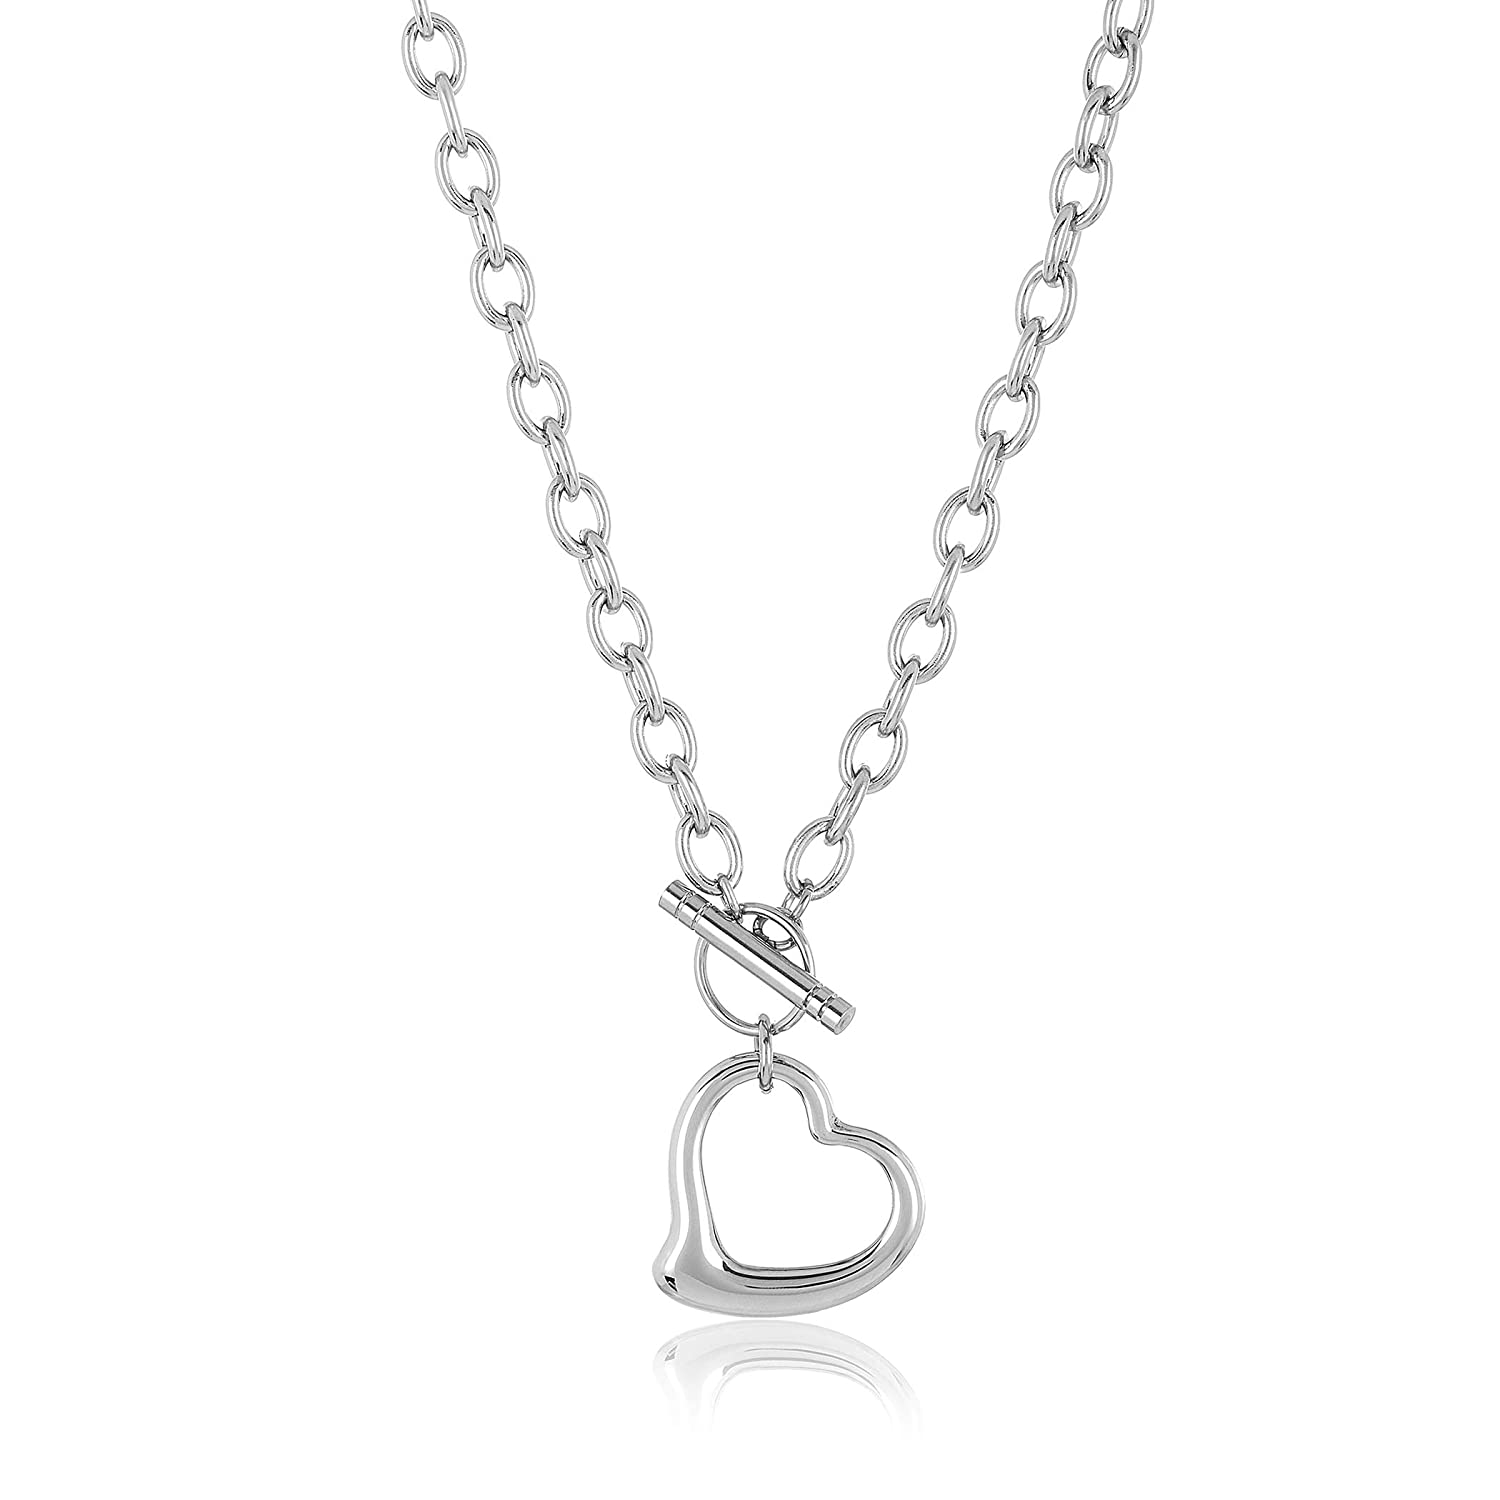 3fd980edcba West Coast Jewelry | ELYA Stainless Steel Cable Chain Open Heart Toggle  Necklace - 18 Inches